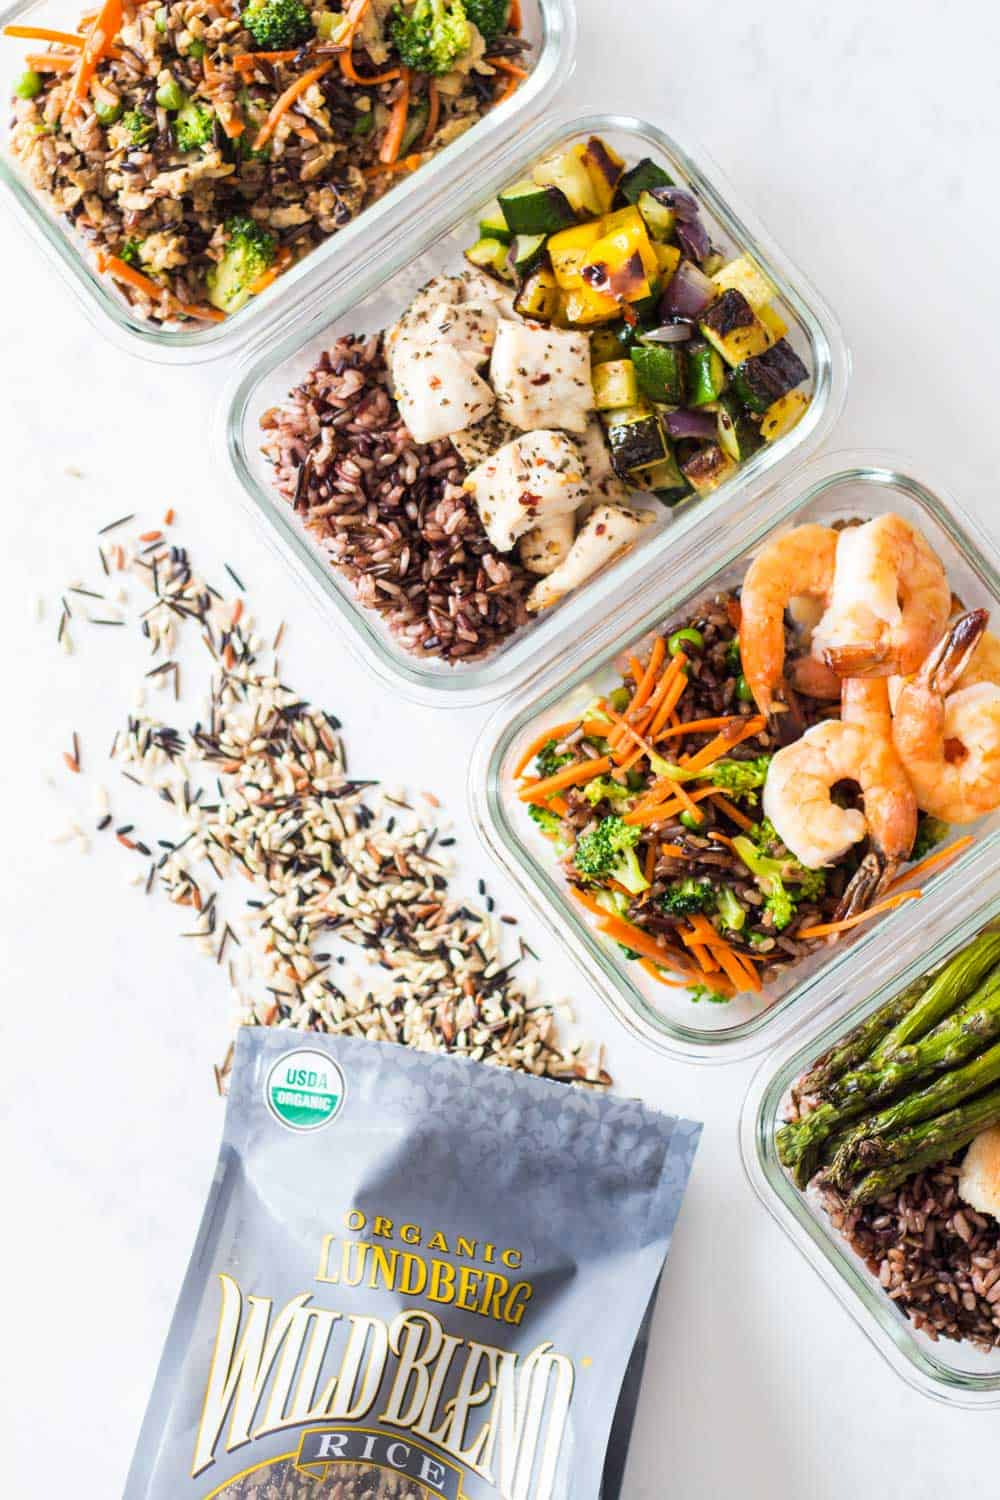 Bag of wild rice blend with spilled rice, and four containers showing different combinations of meal prep dishes.